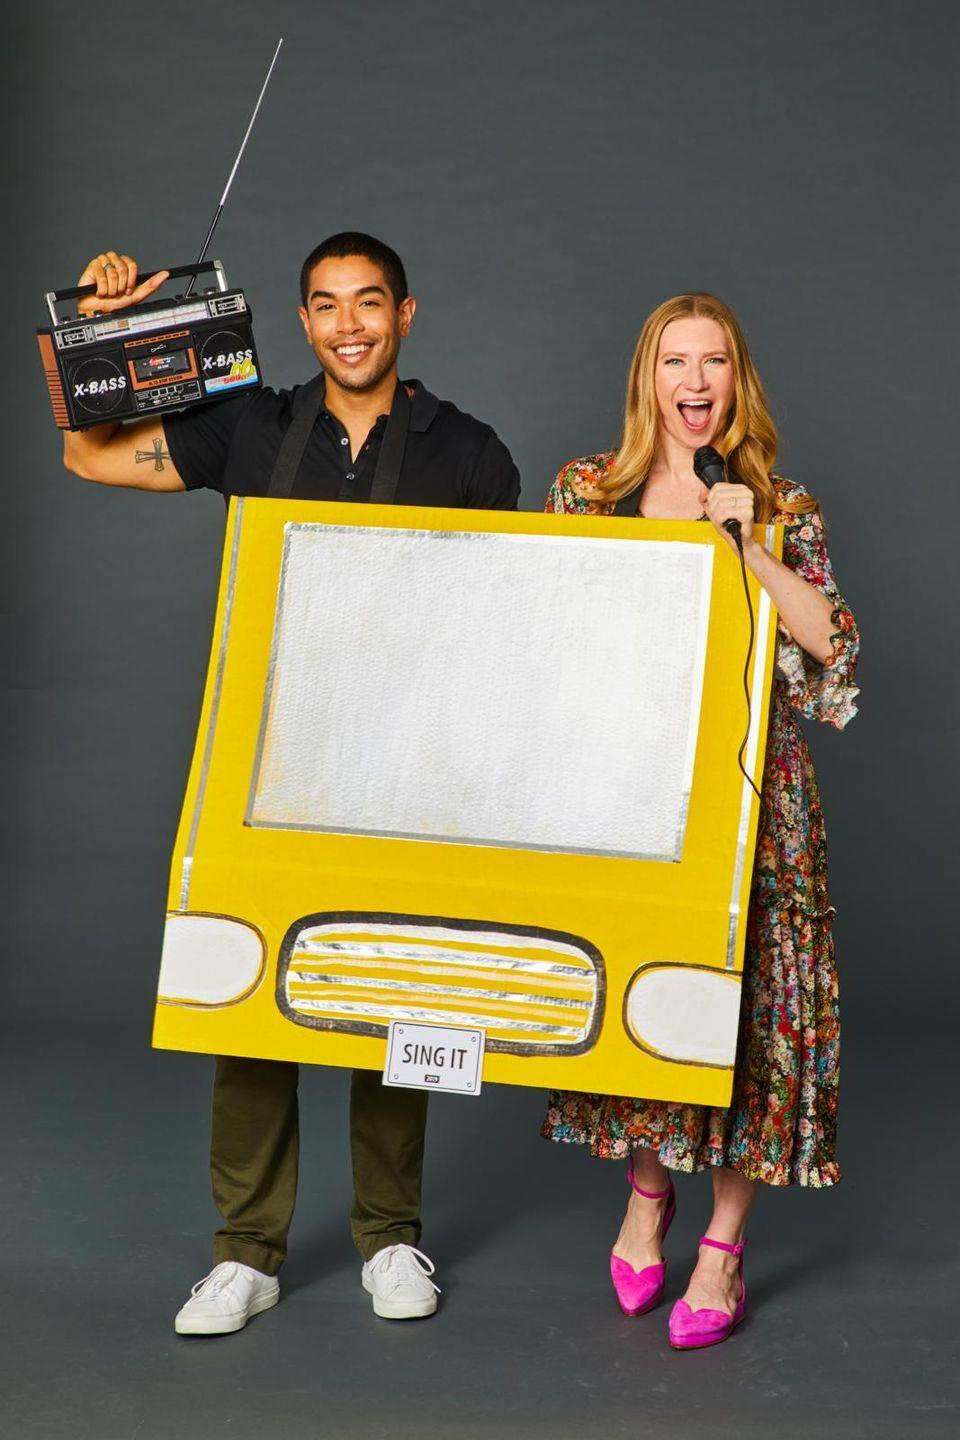 """<p>Give James Corden and crew a run for their money: Start with a piece of yellow presentation board and use paint and washi tape to make it look like a taxi. Then, secure velcro strip straps around your neck. Finish it off with a boom box and microphone, and get singing! </p><p><a class=""""link rapid-noclick-resp"""" href=""""https://www.amazon.com/JENSEN-CD-490-Portable-Stereo-Player/dp/B00BCA40S0/?tag=syn-yahoo-20&ascsubtag=%5Bartid%7C10055.g.2625%5Bsrc%7Cyahoo-us"""" rel=""""nofollow noopener"""" target=""""_blank"""" data-ylk=""""slk:SHOP BOOM BOXES""""><strong>SHOP BOOM BOXES</strong></a></p>"""